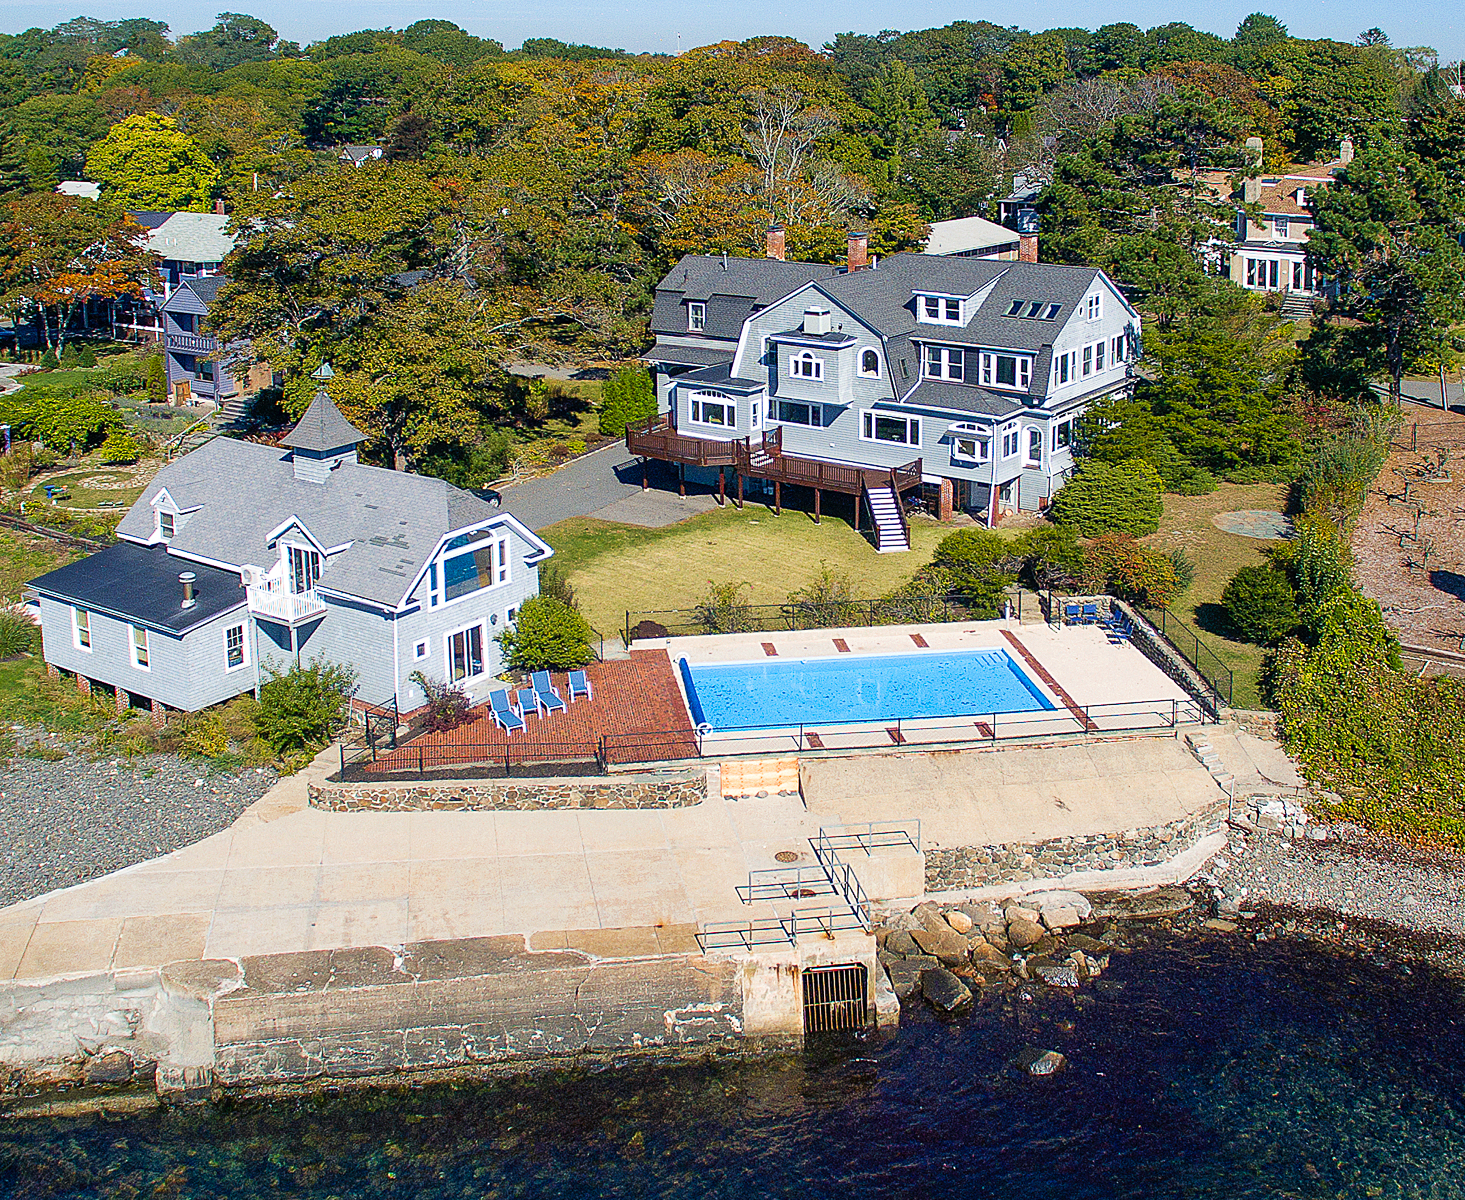 Casa Unifamiliar por un Venta en North of Boston Oceanfront 11 Crown Way Marblehead, Massachusetts 01945 Estados Unidos